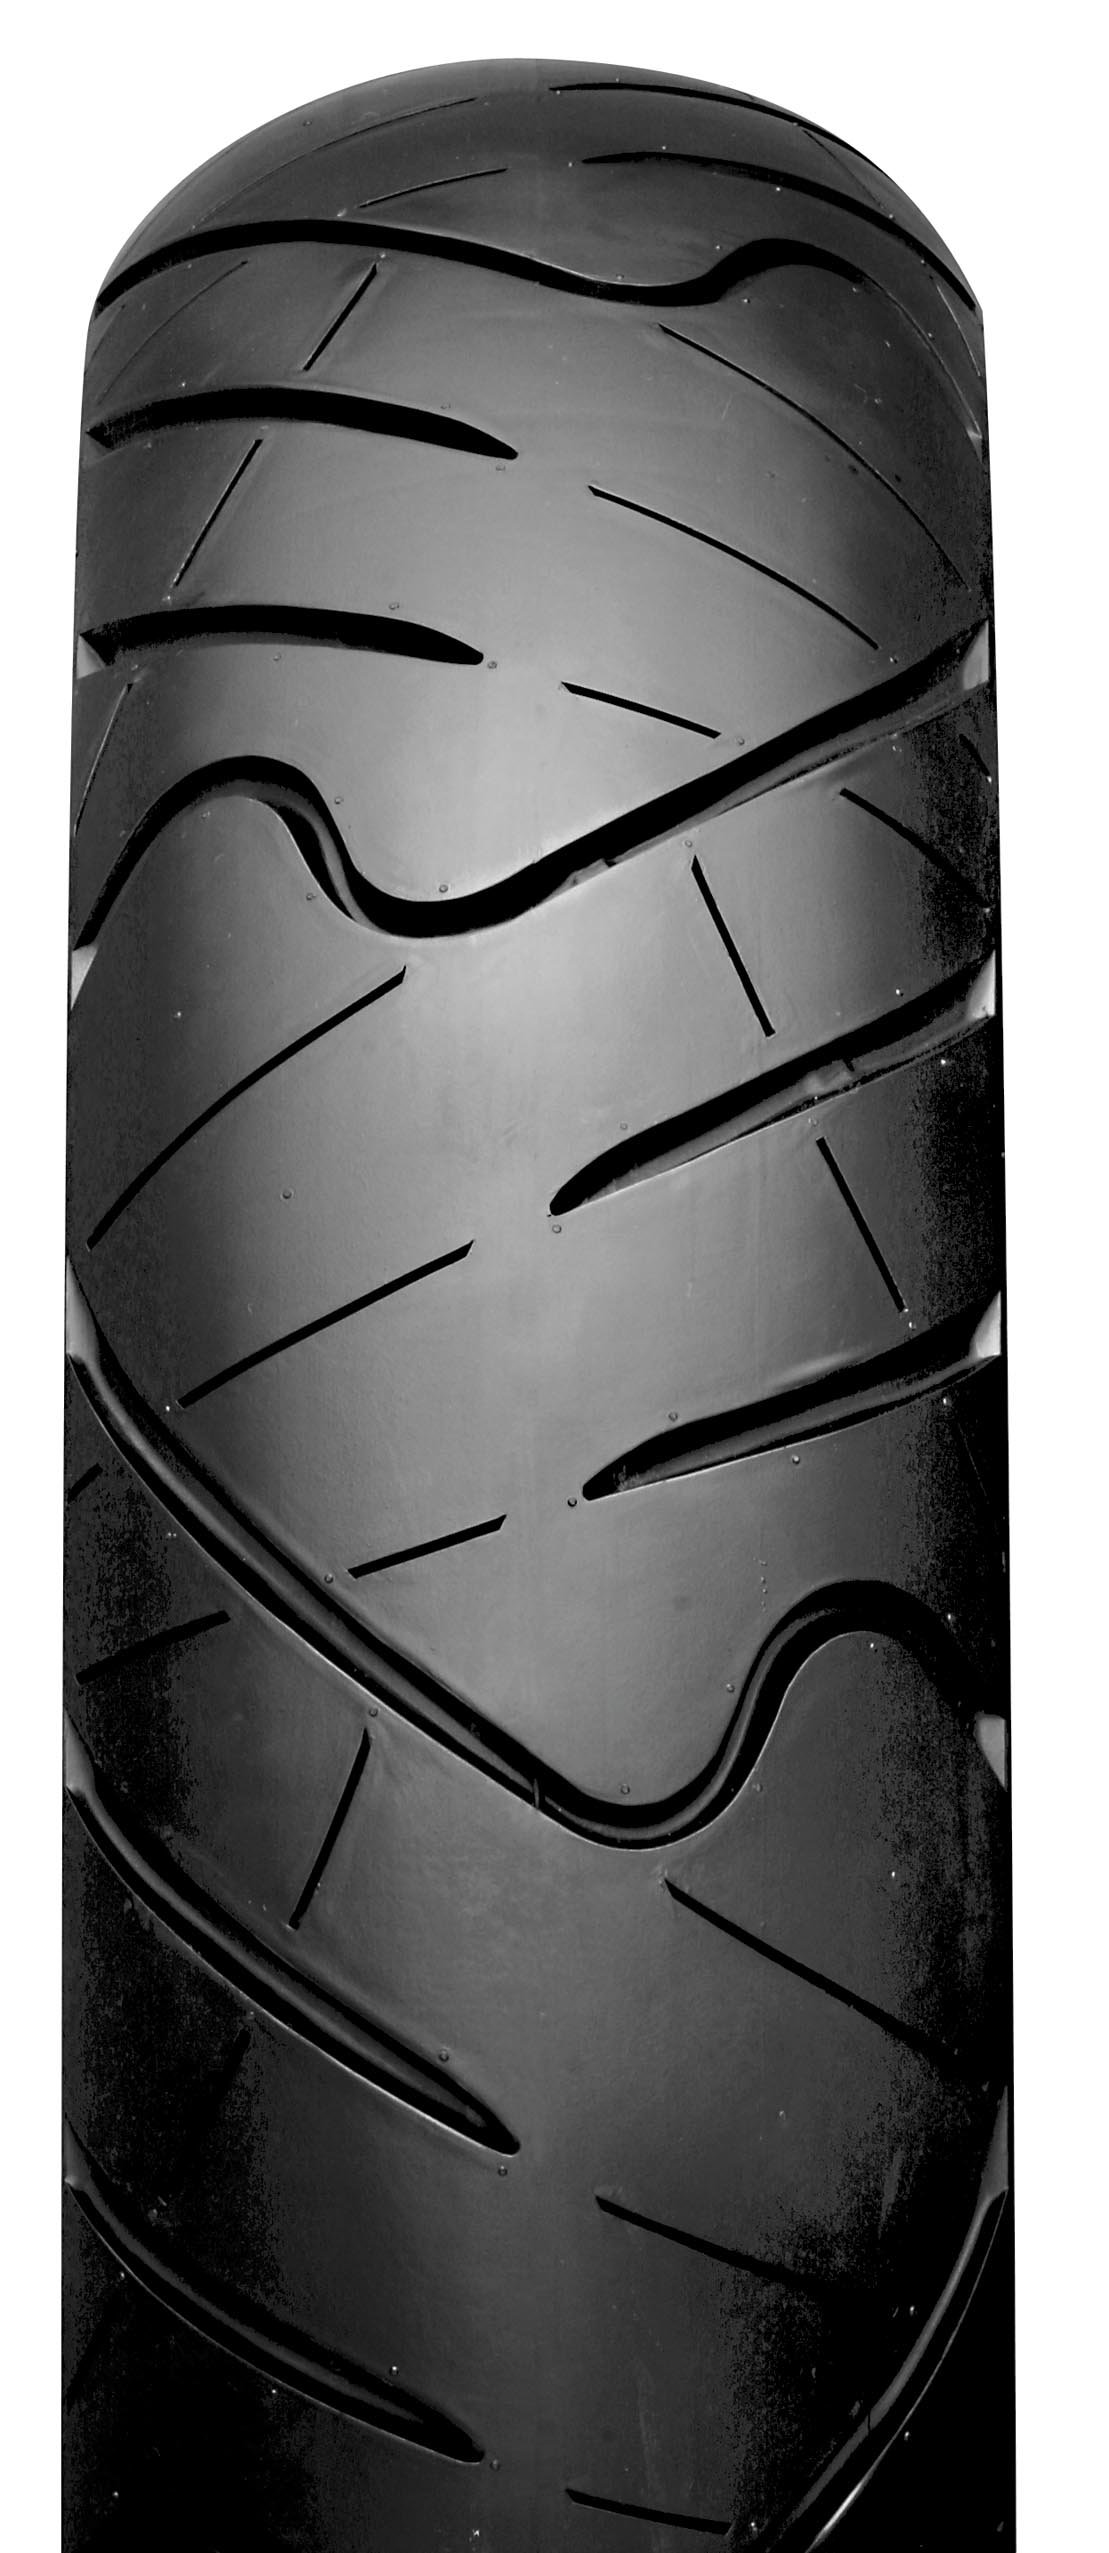 IRC Road Winner RX-01 Tire - Rear - 130/70-17 , Load Rating: 62, Position: Rear, Tire Size: 130/70-17, Rim Size: 17, Speed Rating: S, Tire Type: Street, Tire Construction: Bias, Tire Application: Sport T10284